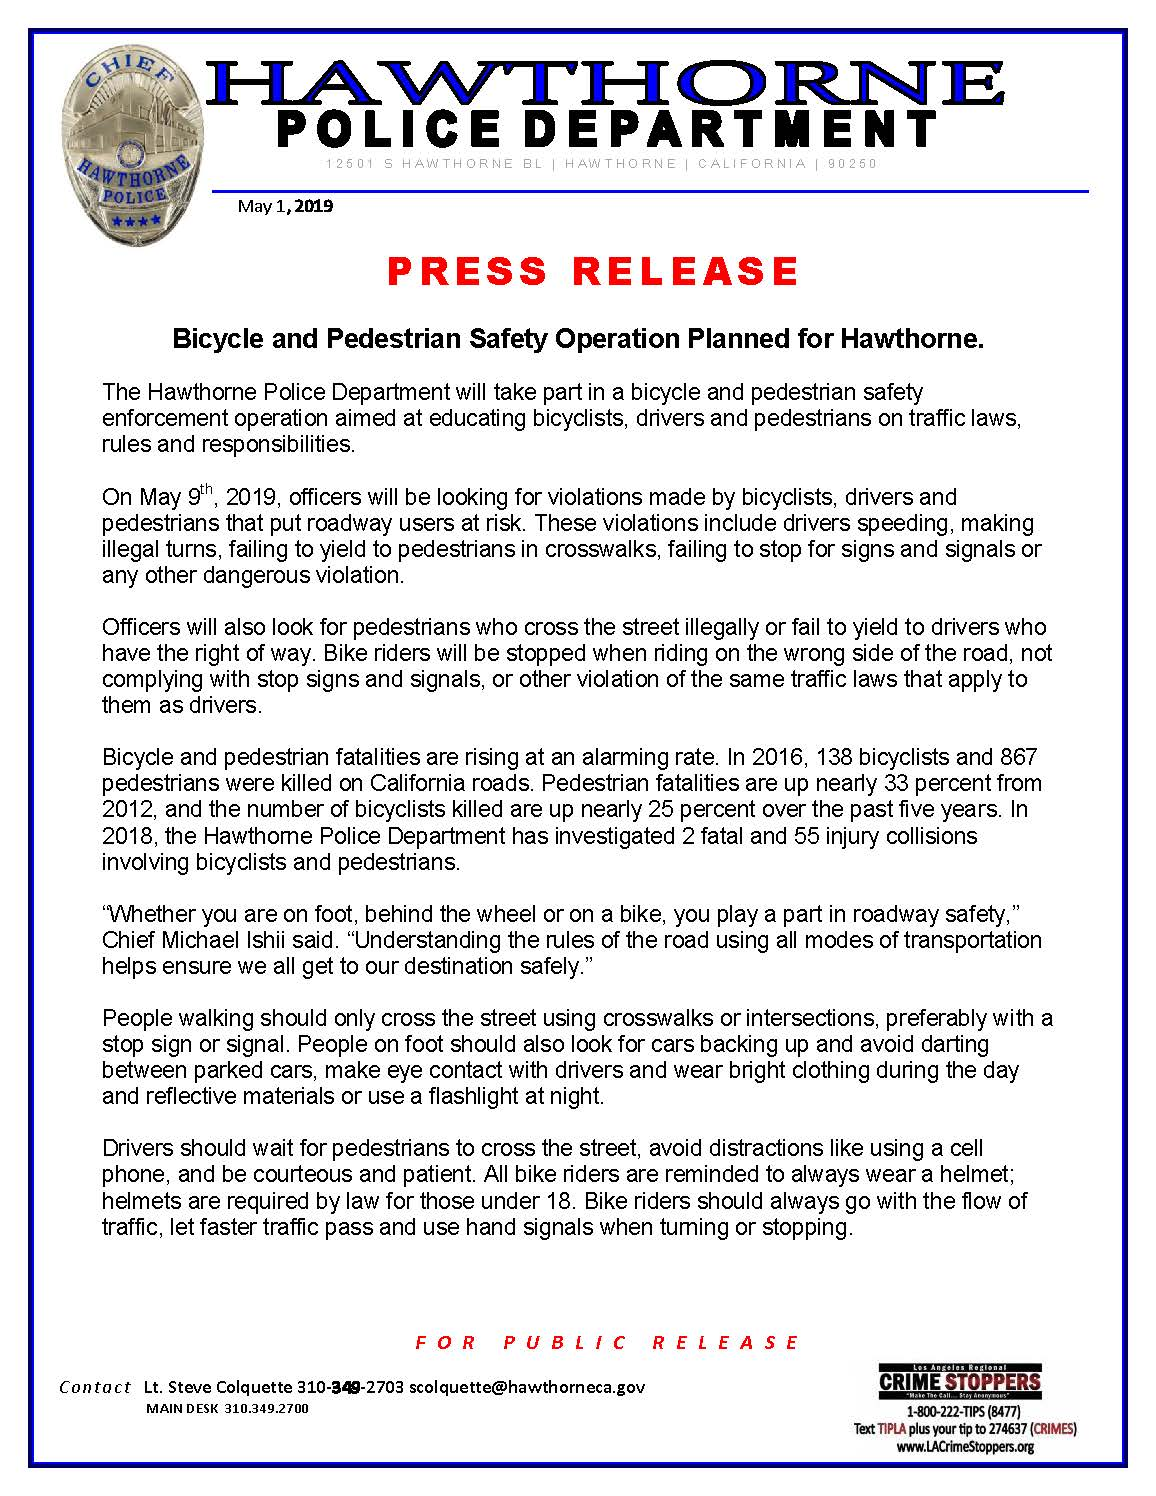 Bicycle and Pedestrian Safety Operation Planned for Hawthorne - page1